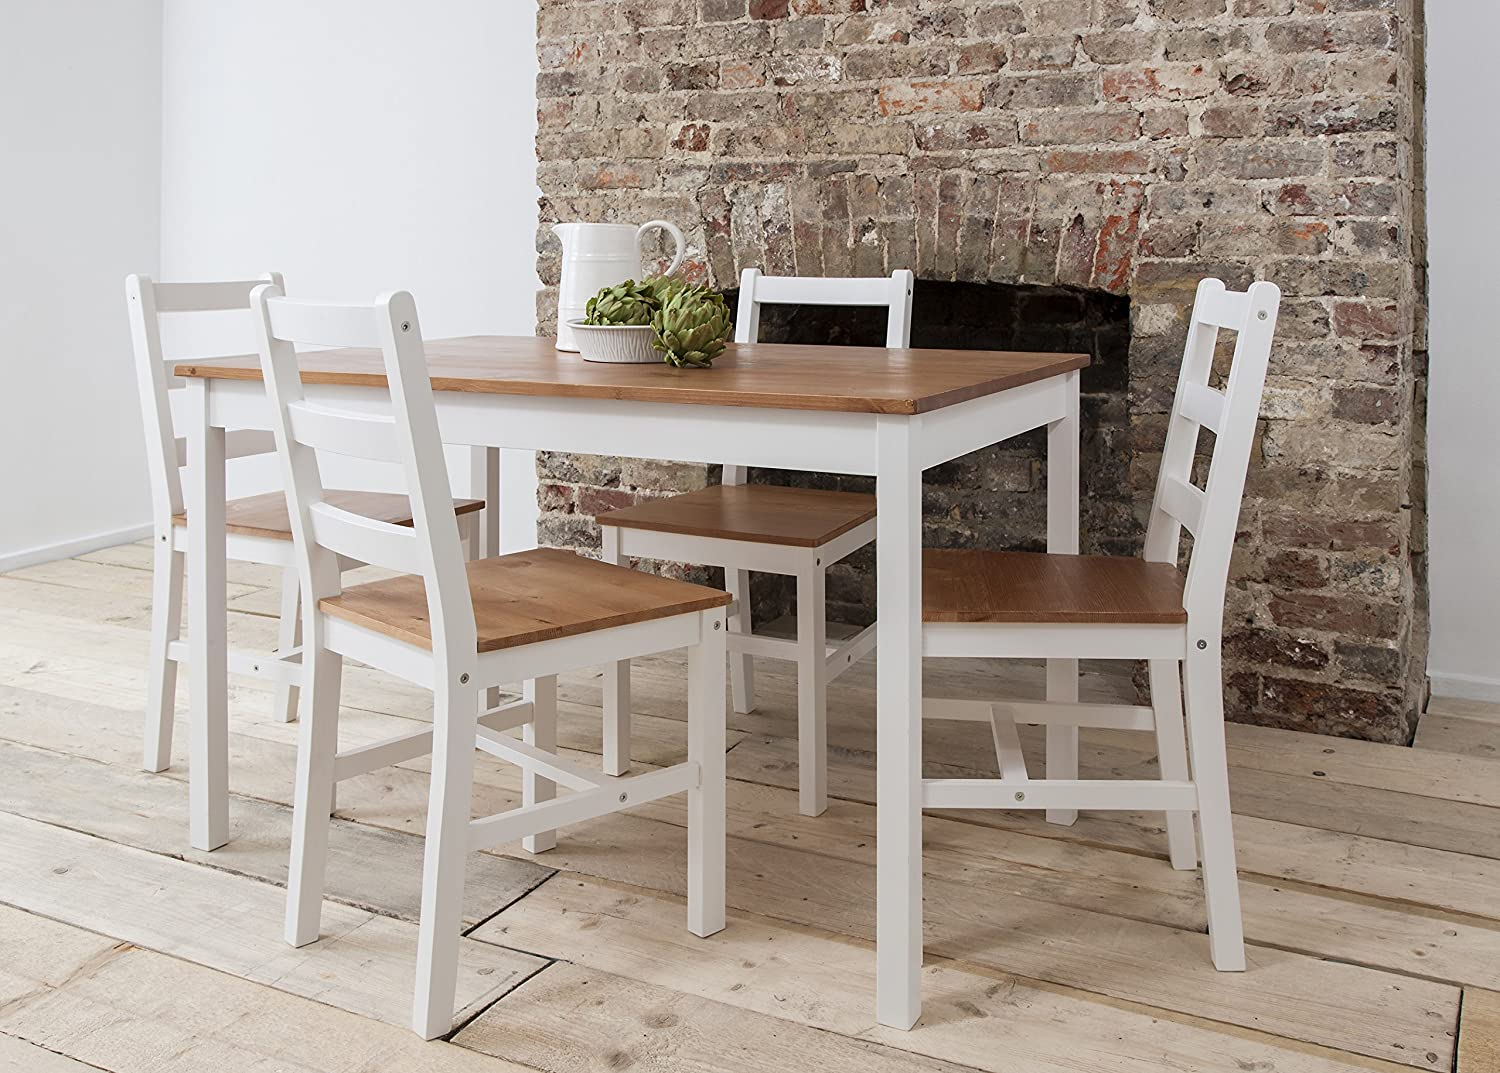 Dining Table U0026 4 Chairs Annika In White And Natural Pine (Natural Pine U0026  White): Amazon.co.uk: Kitchen U0026 Home